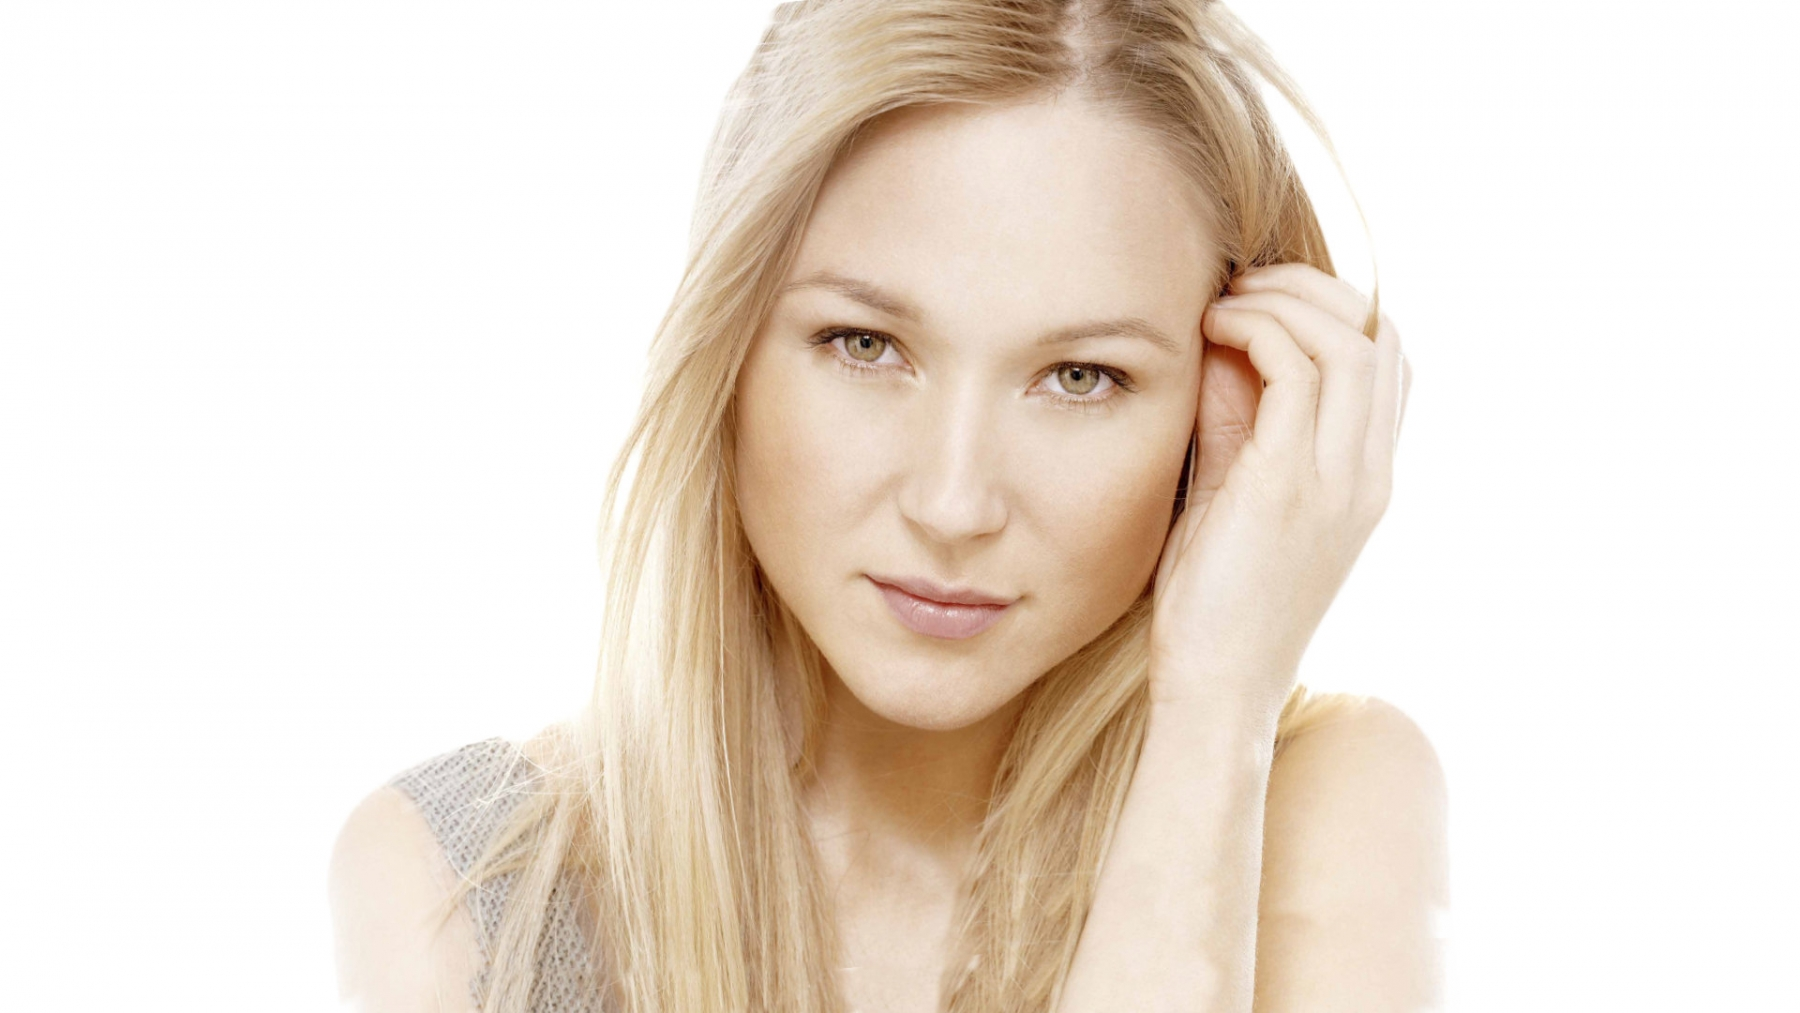 Jewel will perform at the Seneca Niagara Events Center in Niagara Falls.